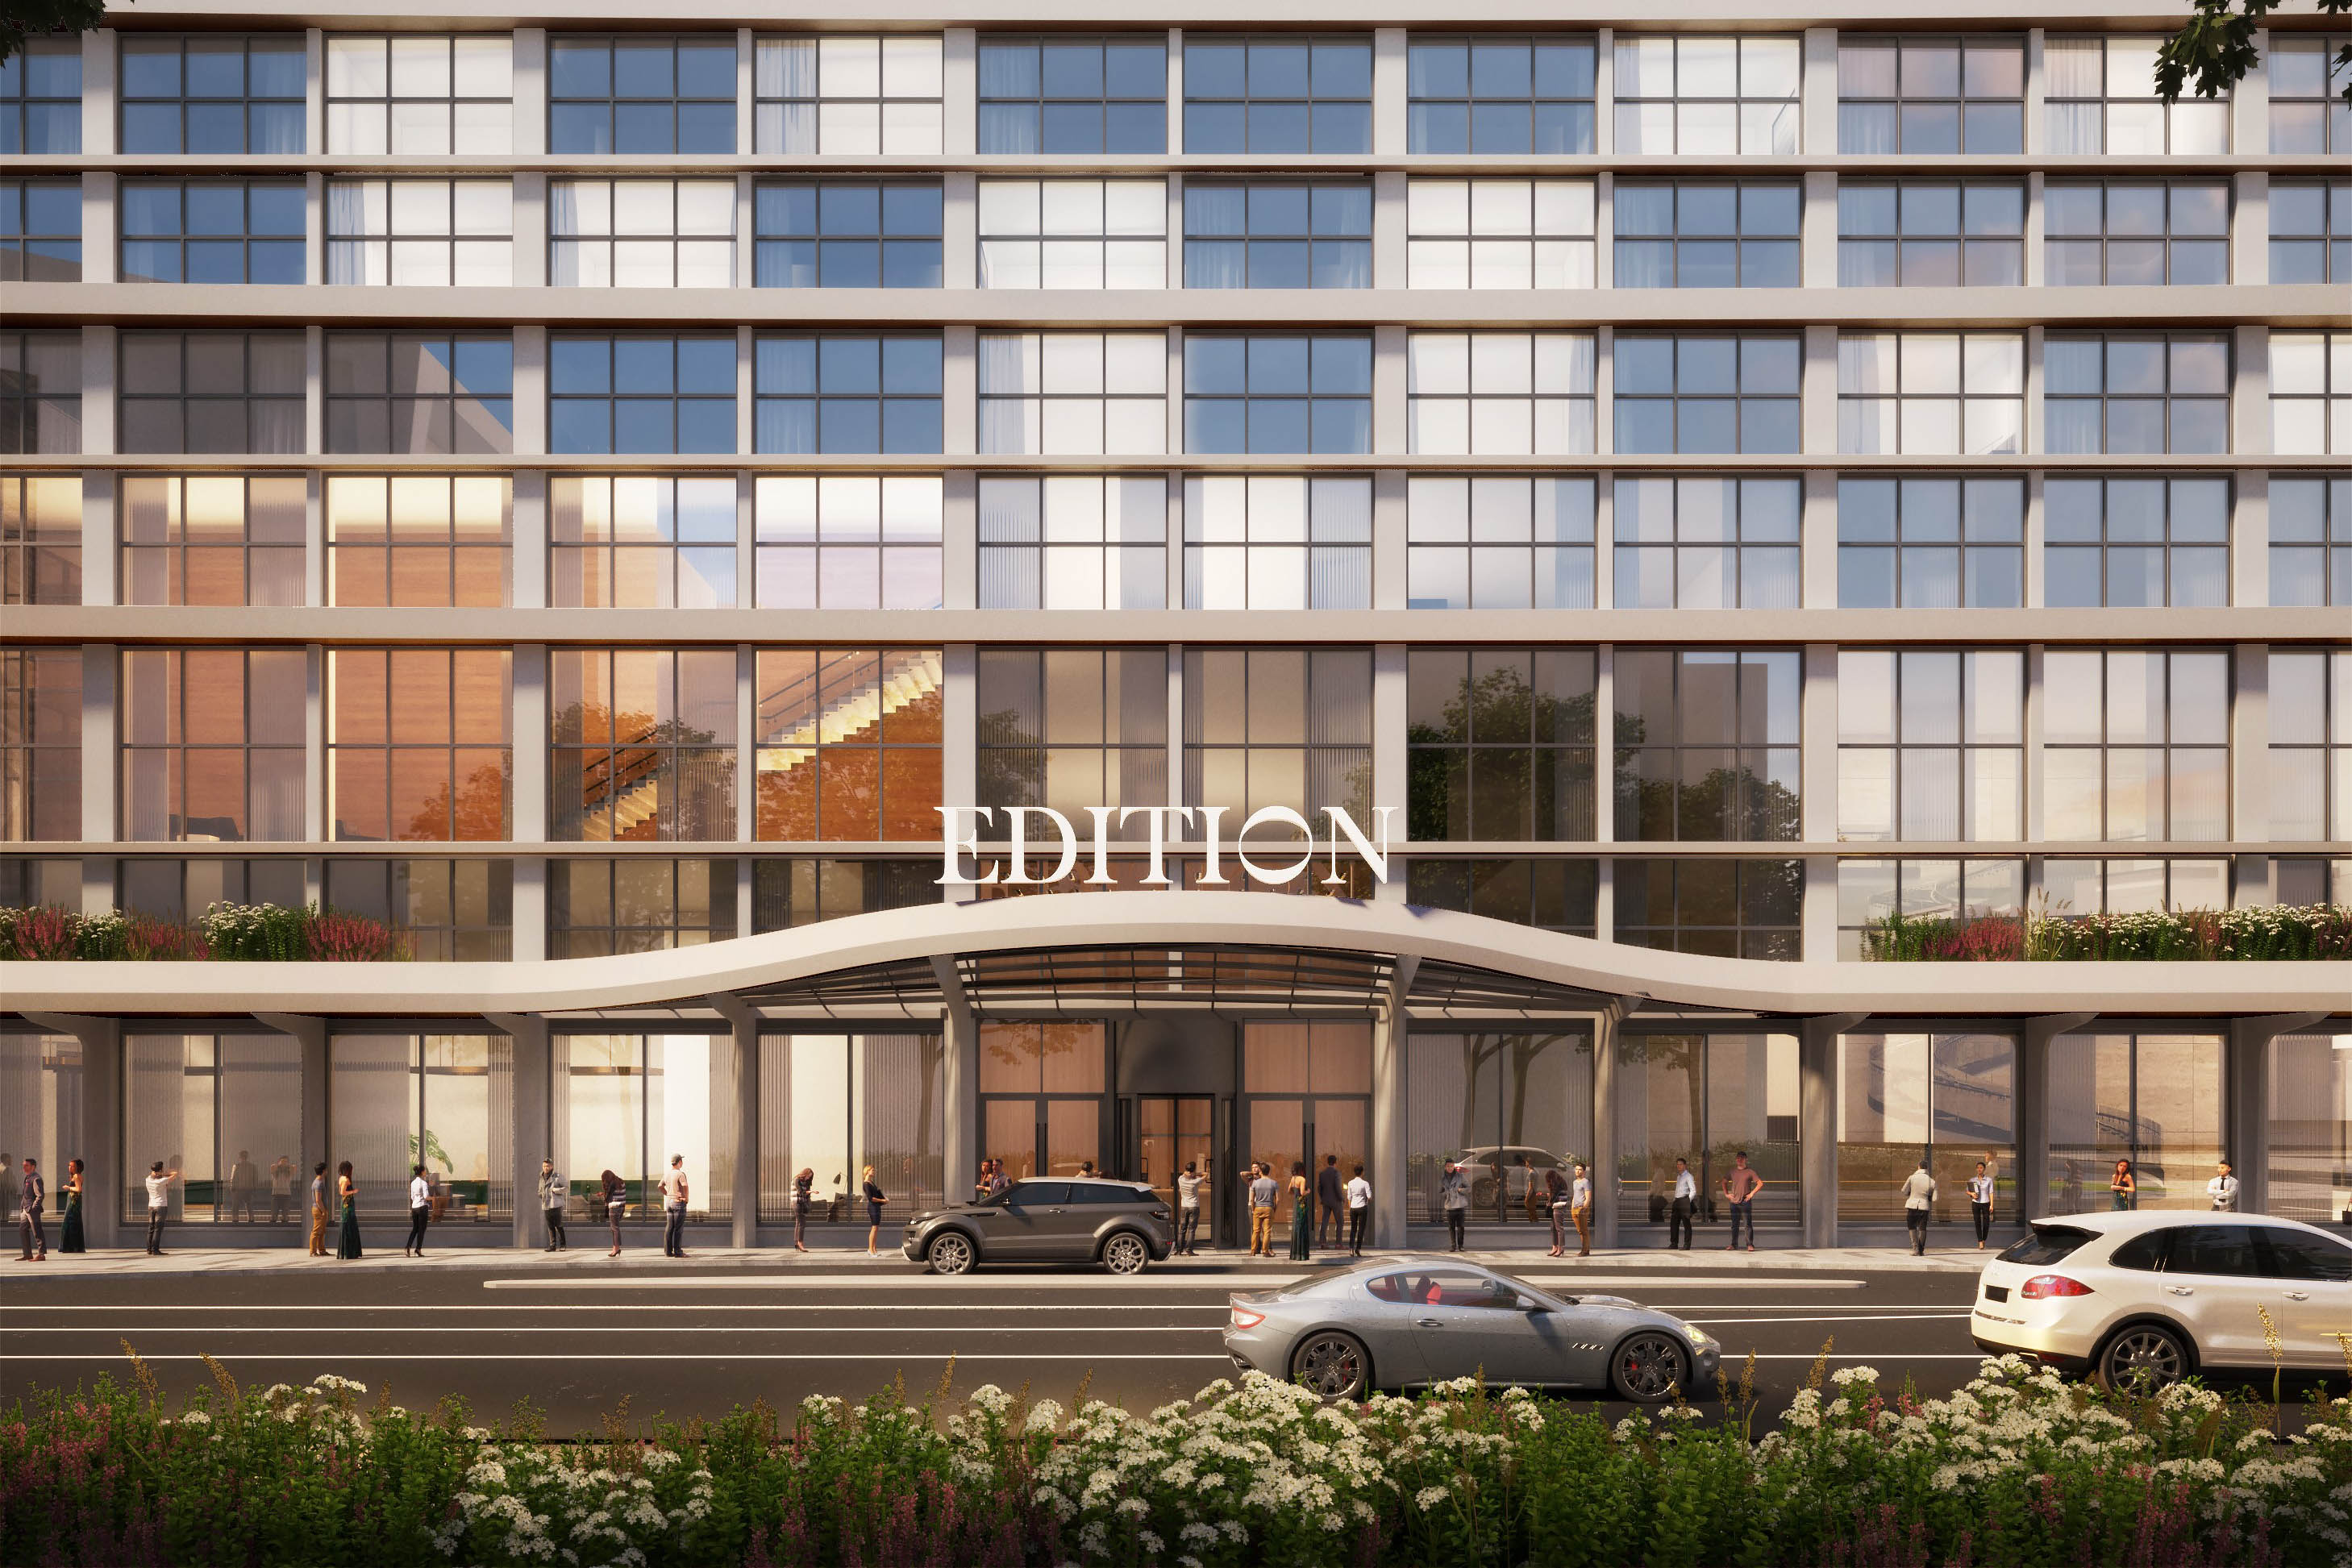 The Development Company Behind Water Street Tampa Announced Thursday That Downtown Will Get Its First Full Service Five Star Hotel In Early 2021